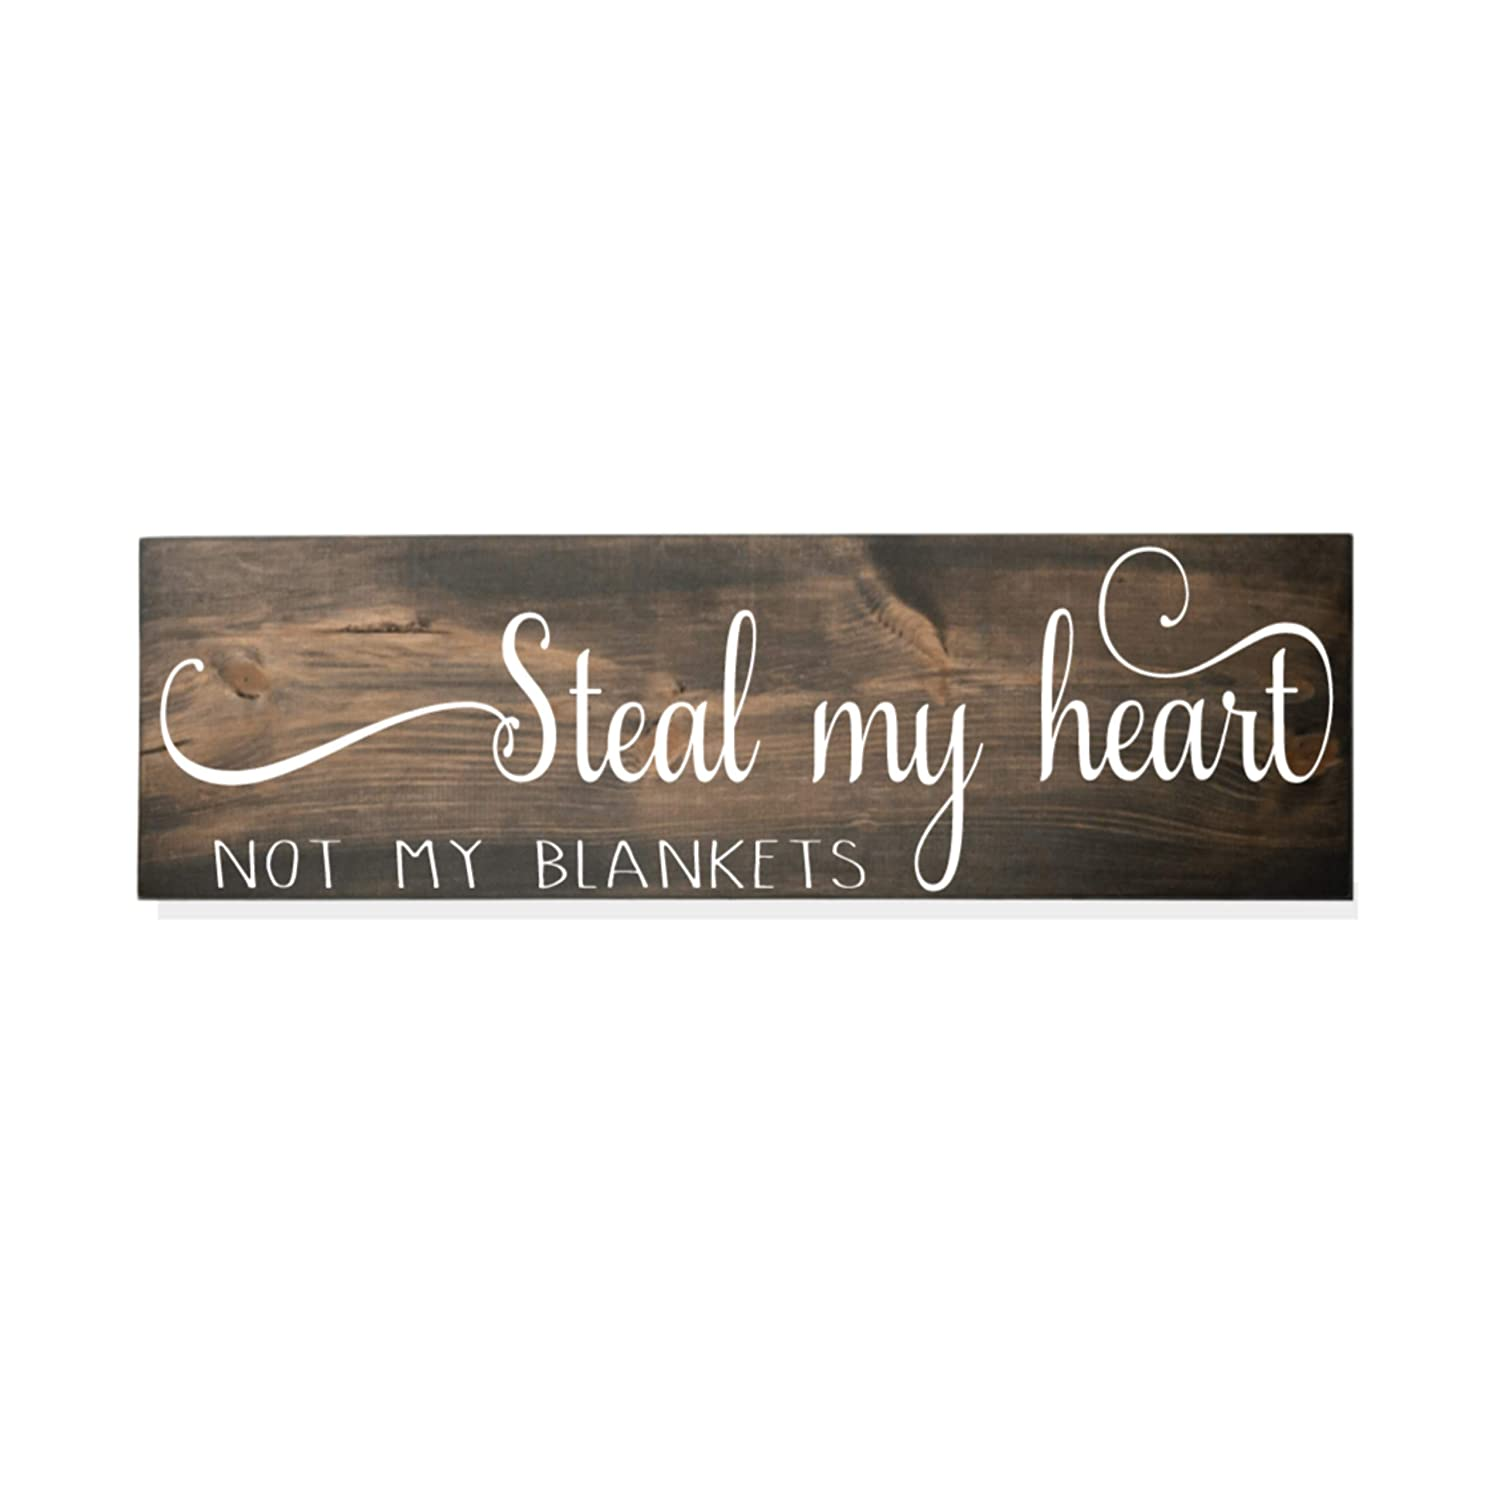 Steal my heart Time sale not blankets wood decor sign bedroom Master latest fa